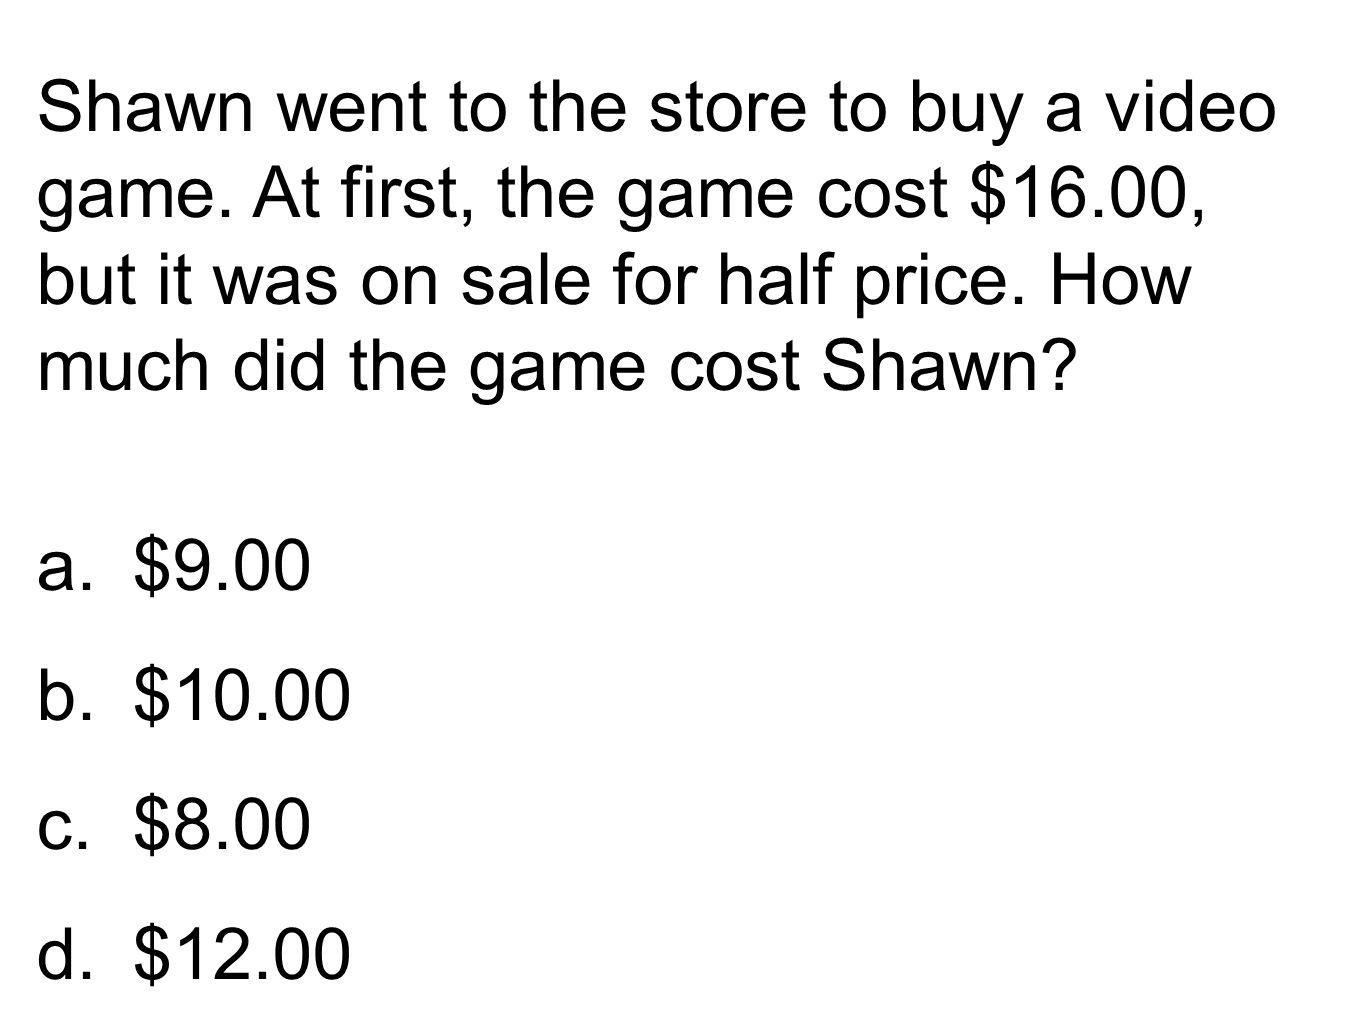 Shawn went to the store to buy a video game